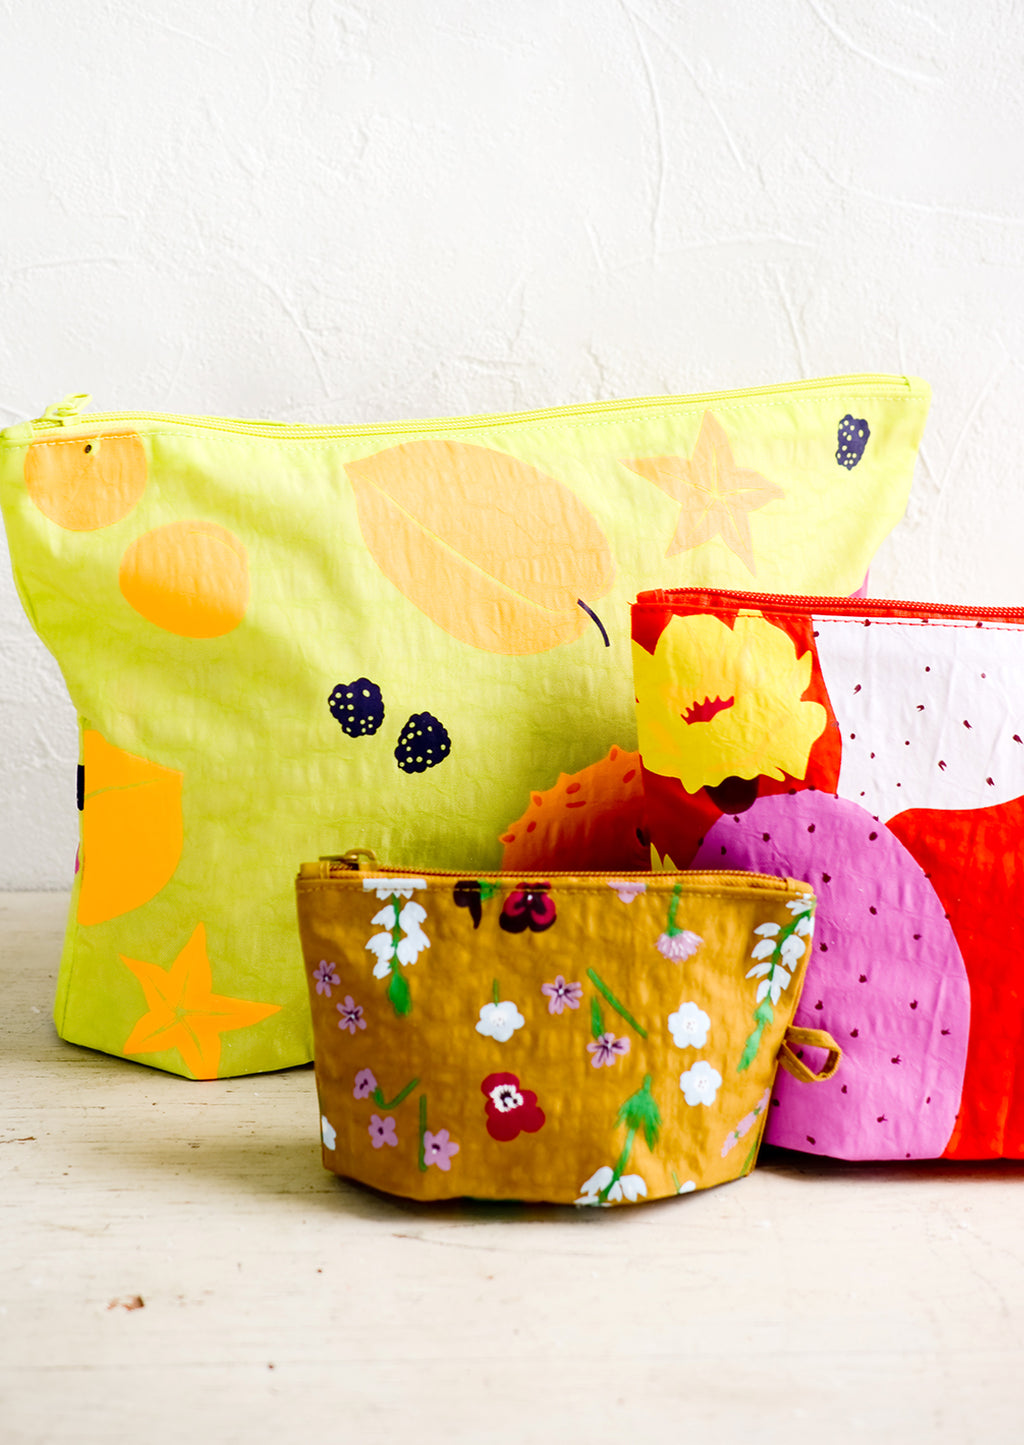 2: A set of three nylon pouches in different colors and patterns and incremental sizes.